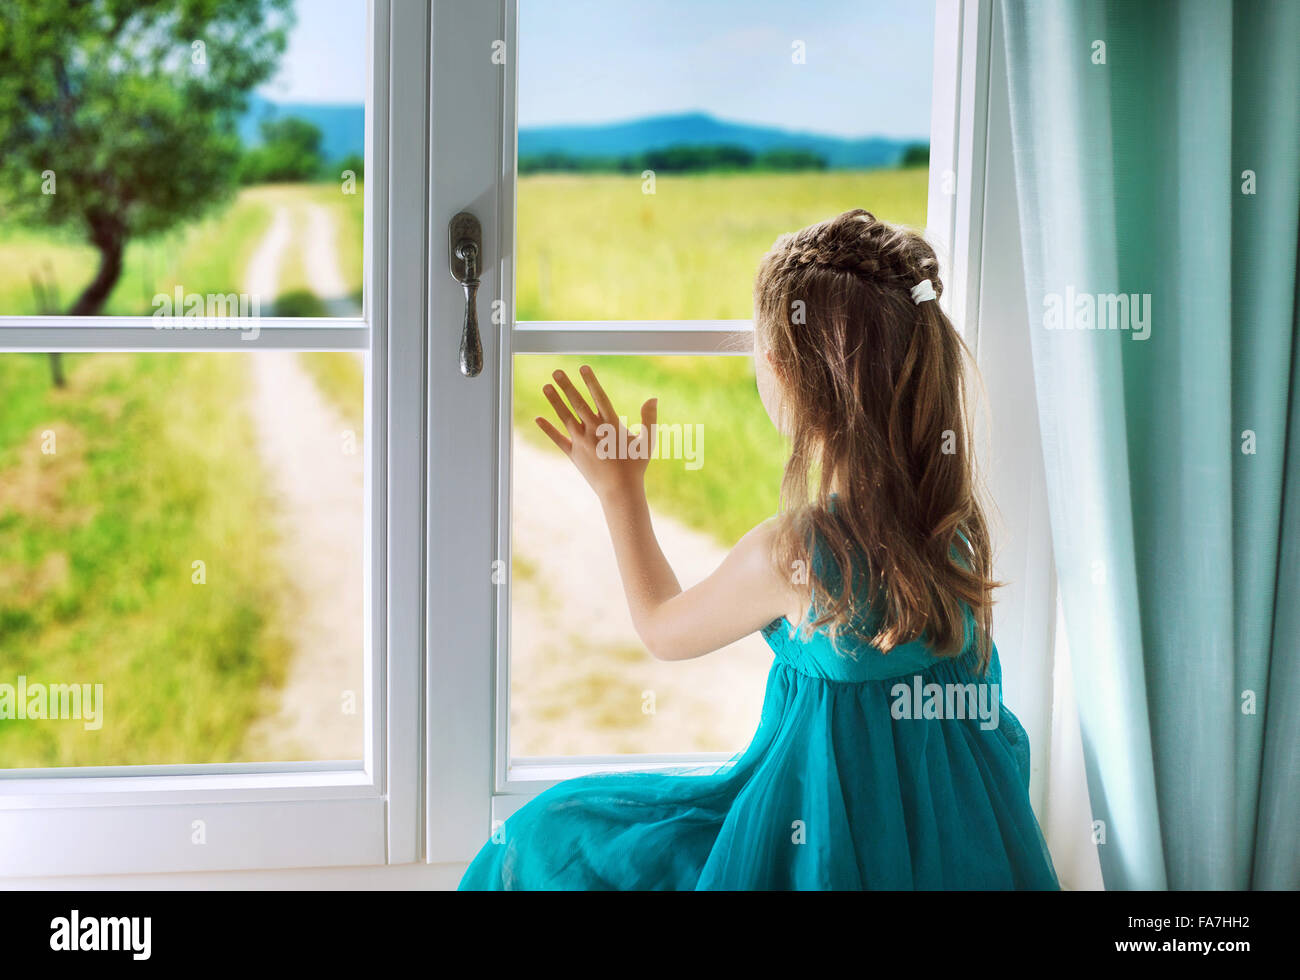 little sad girl looking through window stock photo 92365870 alamy